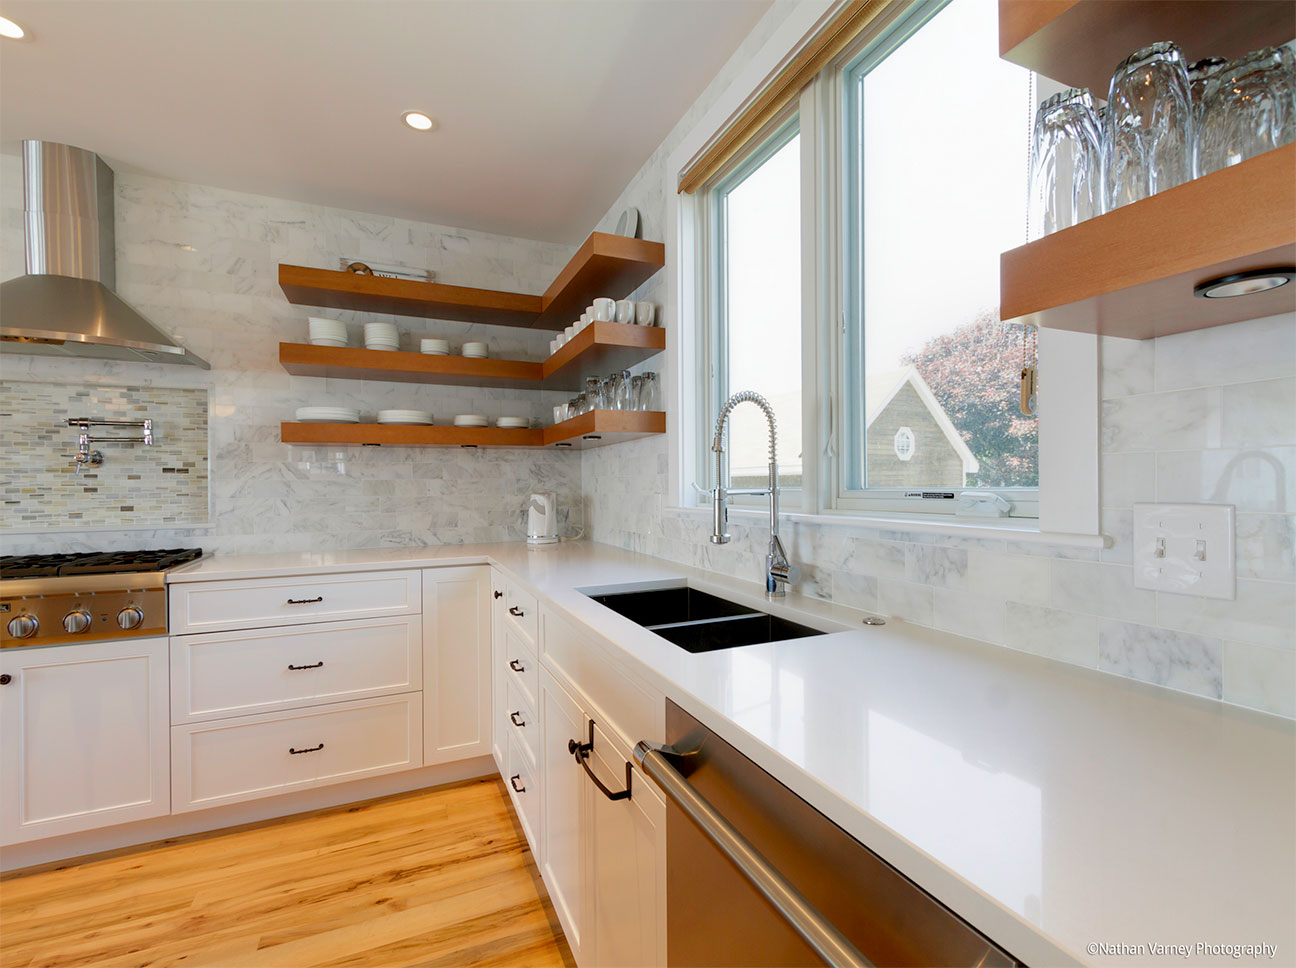 Douston-Kitchens ©Nathan Varney Photography